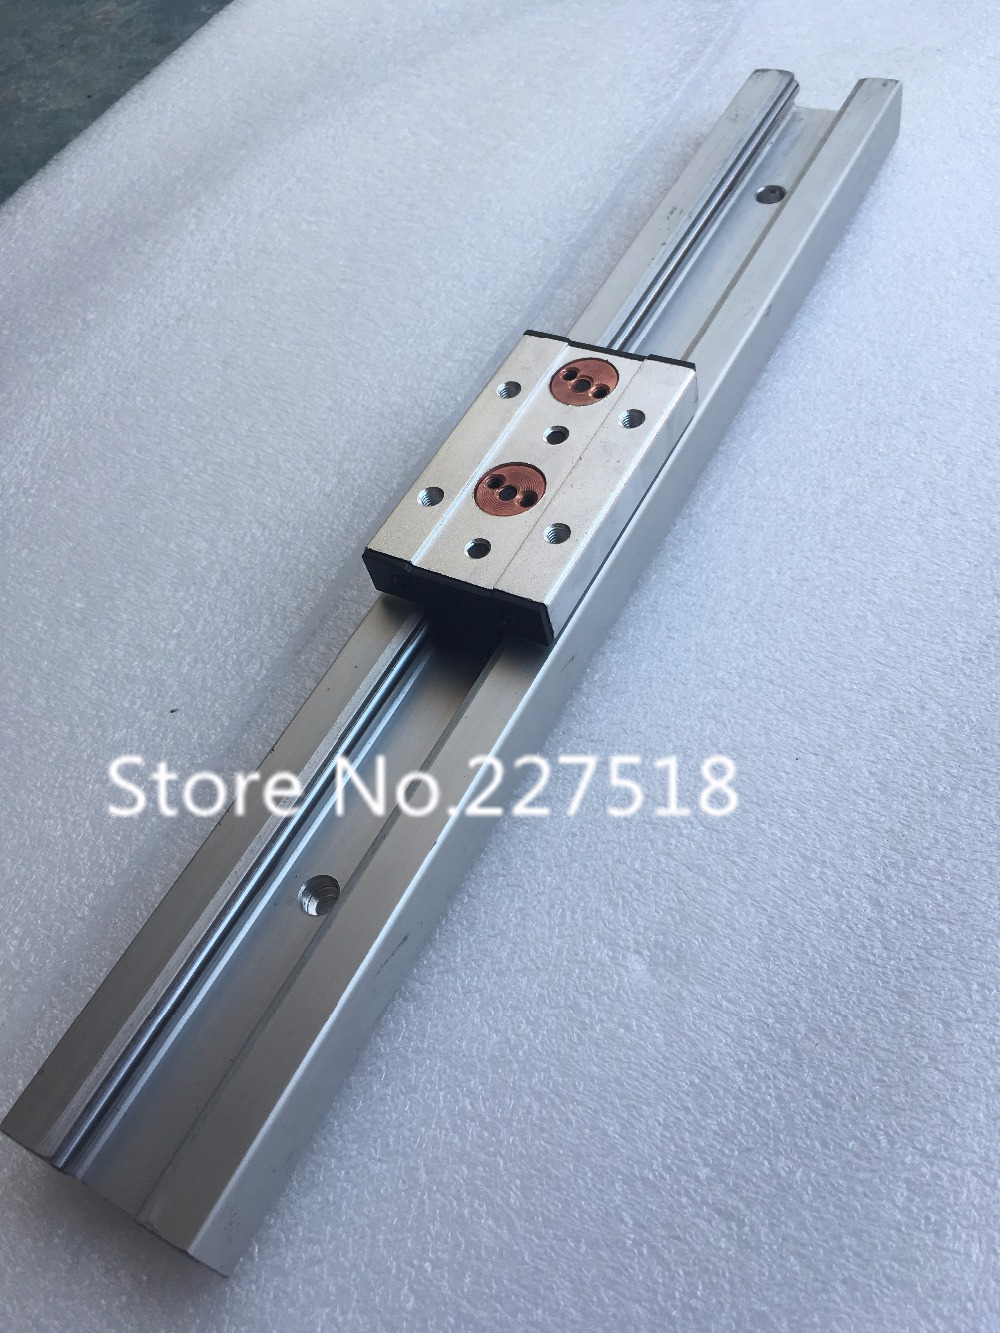 1pcs Double axis roller linear guide SGR15 L650mm +1pcs SGB15UU block multi axis core linear Motion slide rail auminum guide 1pcs linear motion bearings double side rubber seales lm35uu